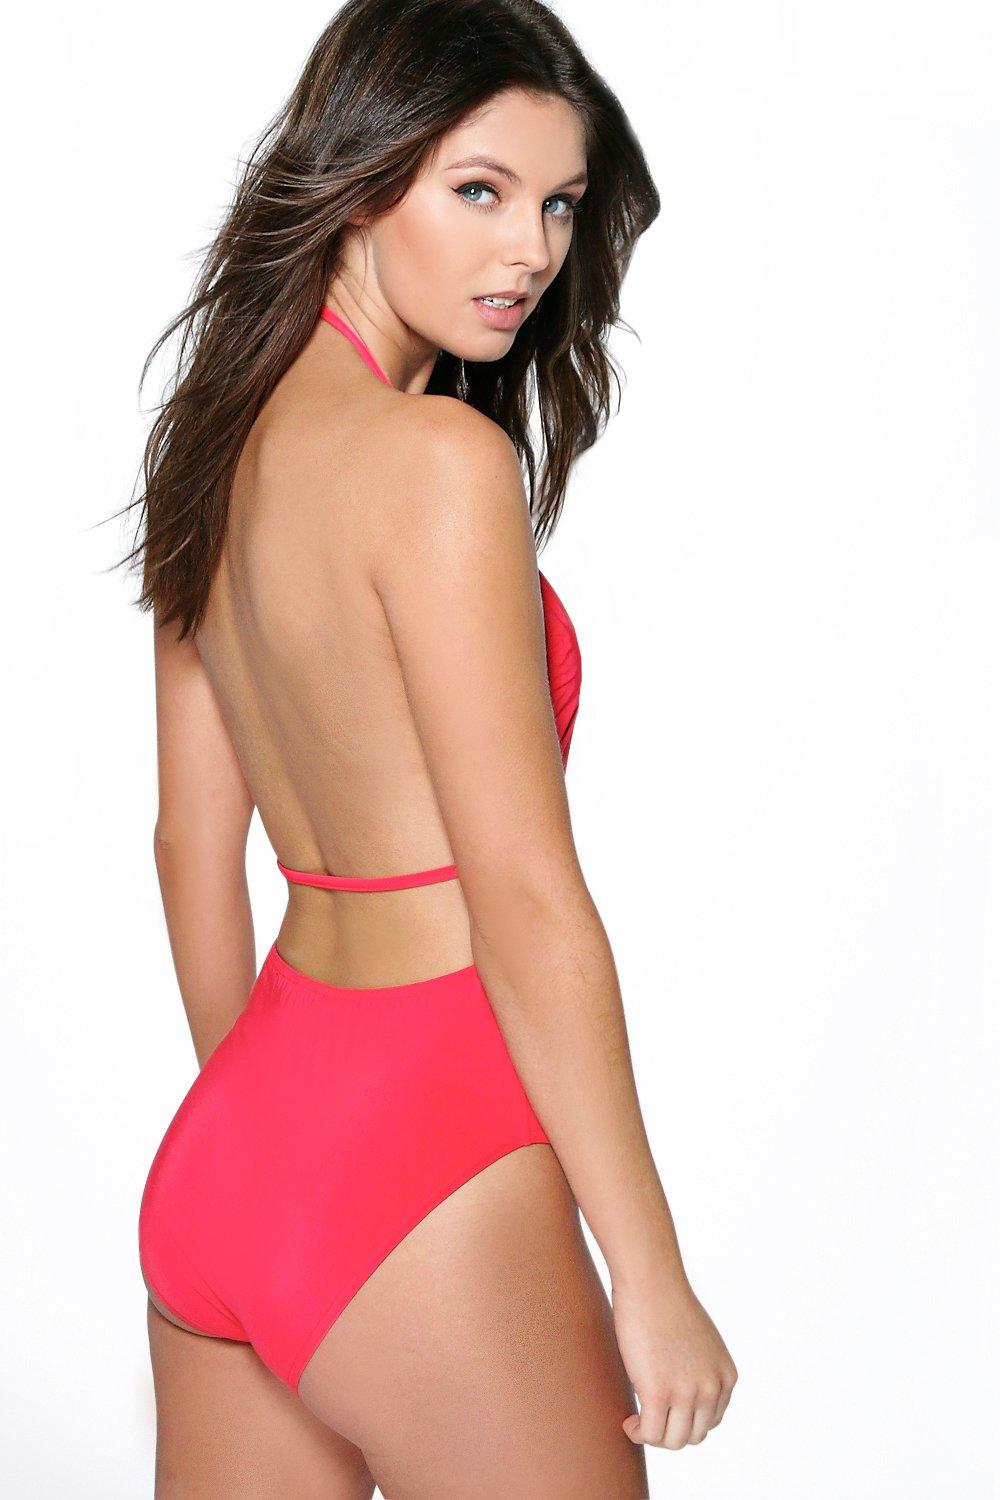 Lauren Backless Strap Slinky Bodysuit